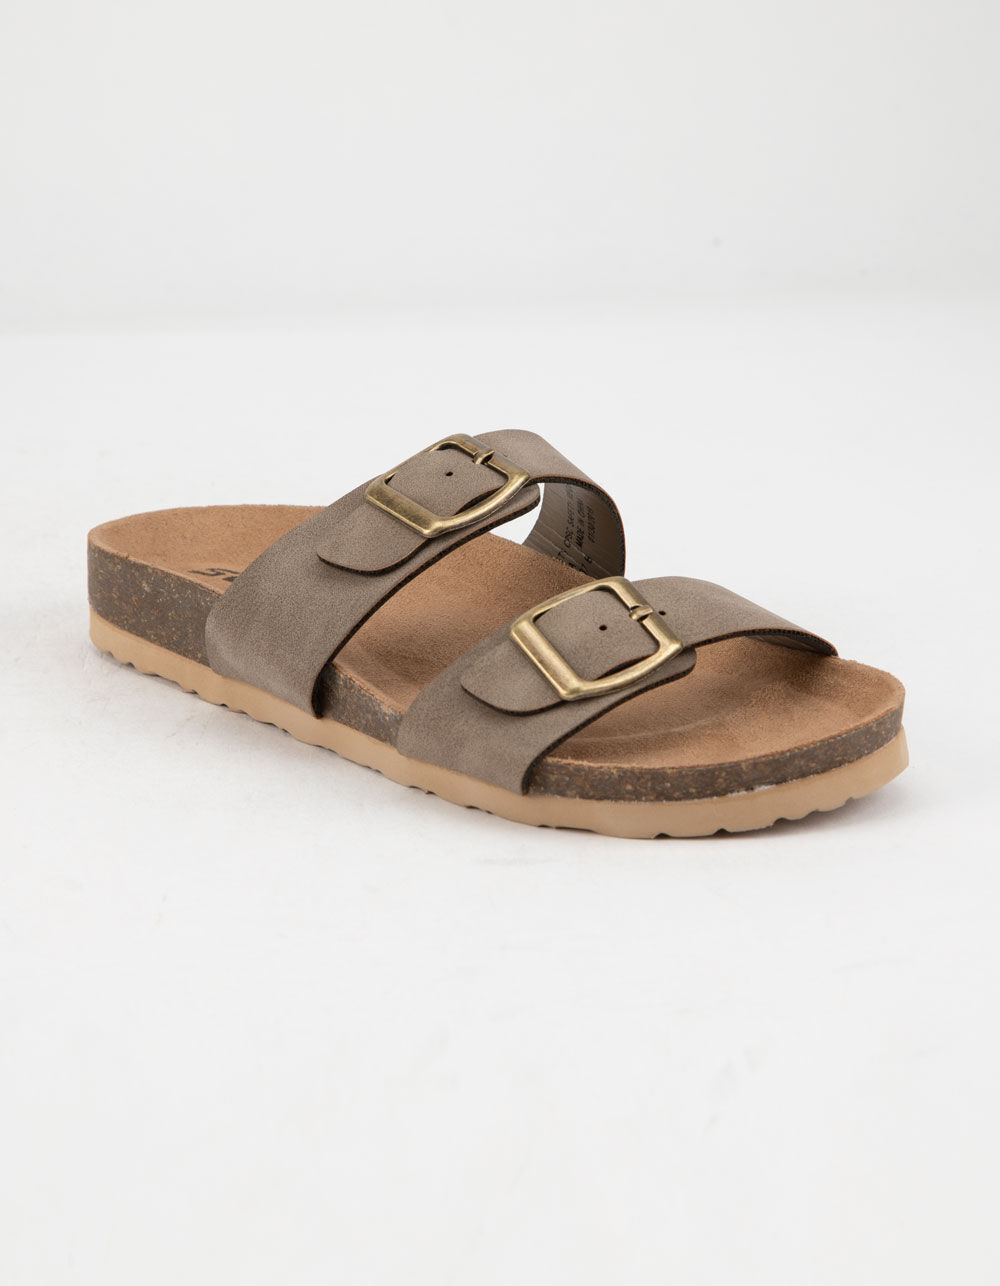 SODA Double Buckle Taupe Girls Slide Sandals